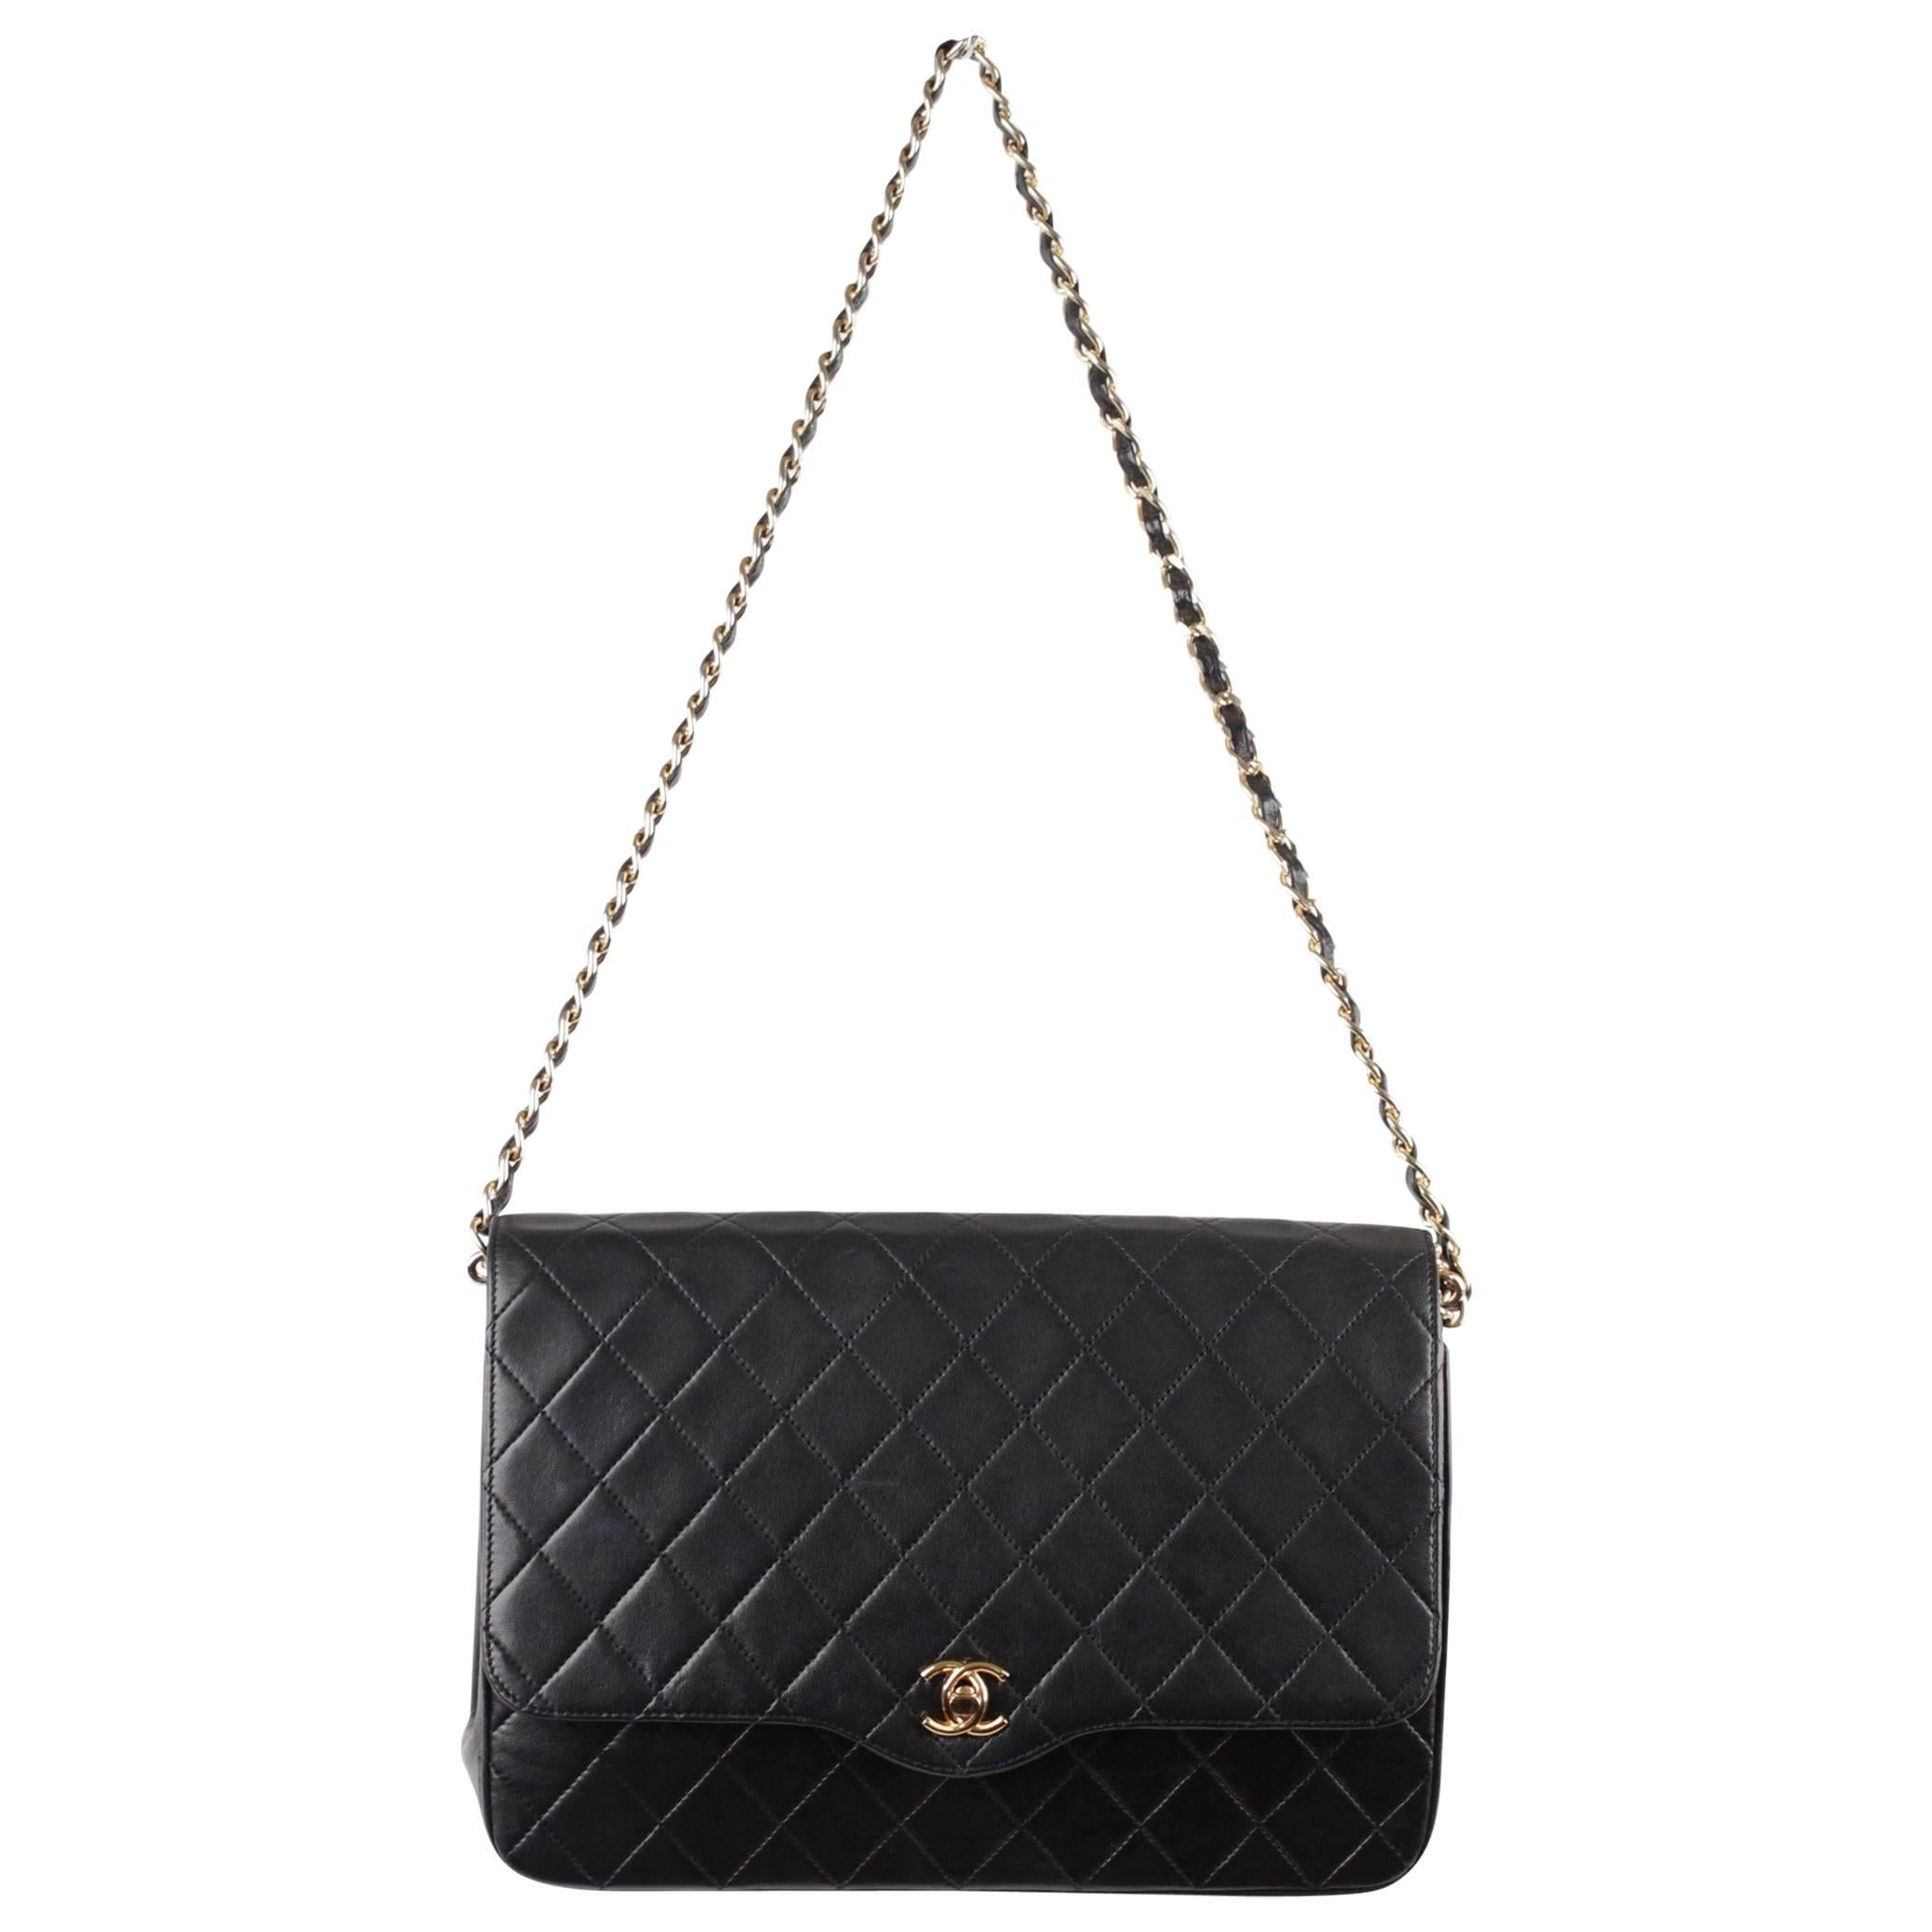 54f08bc0bea744 CHANEL Vintage 80s Black QUILTED Leather Classic Flap SHOULDER BAG at  1stdibs